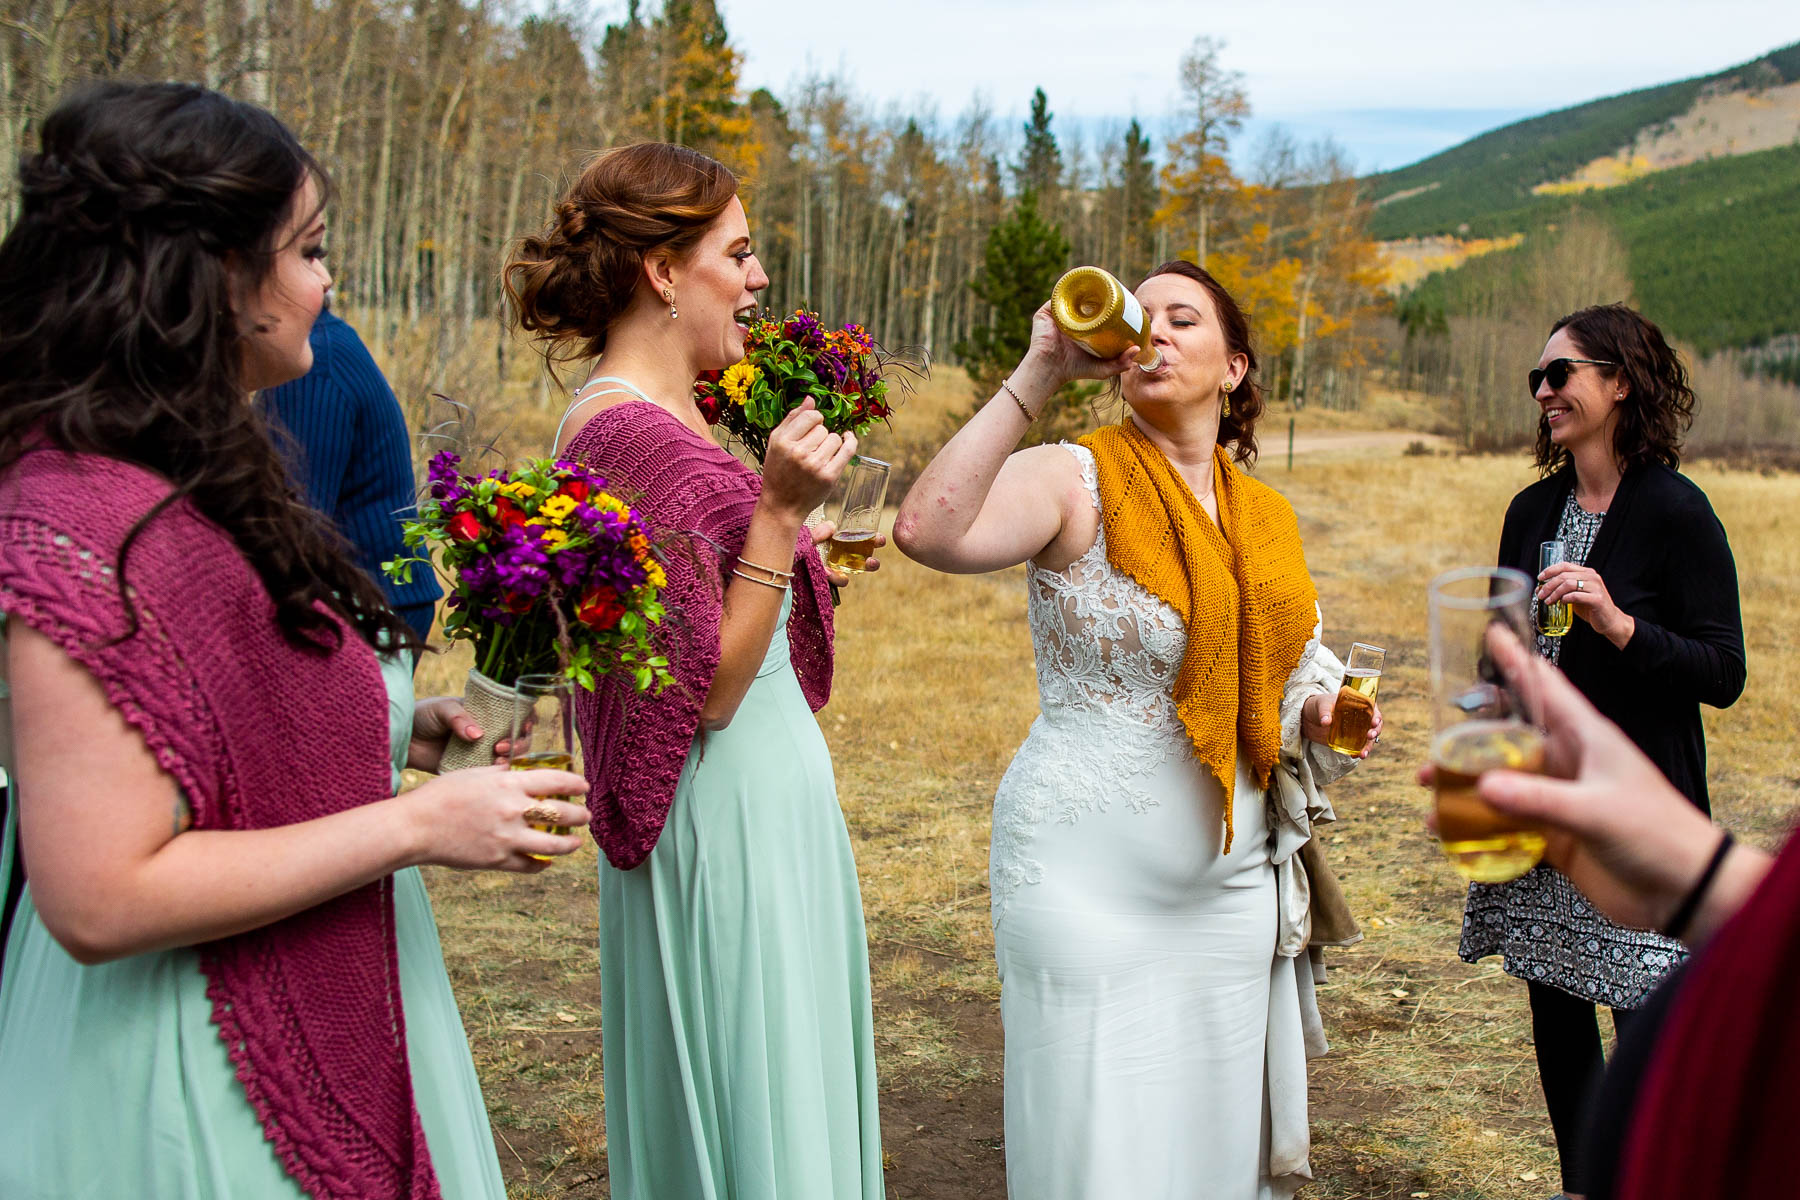 Kenosha Pass Adventure Wedding Pics | The bride ditches her champagne glass